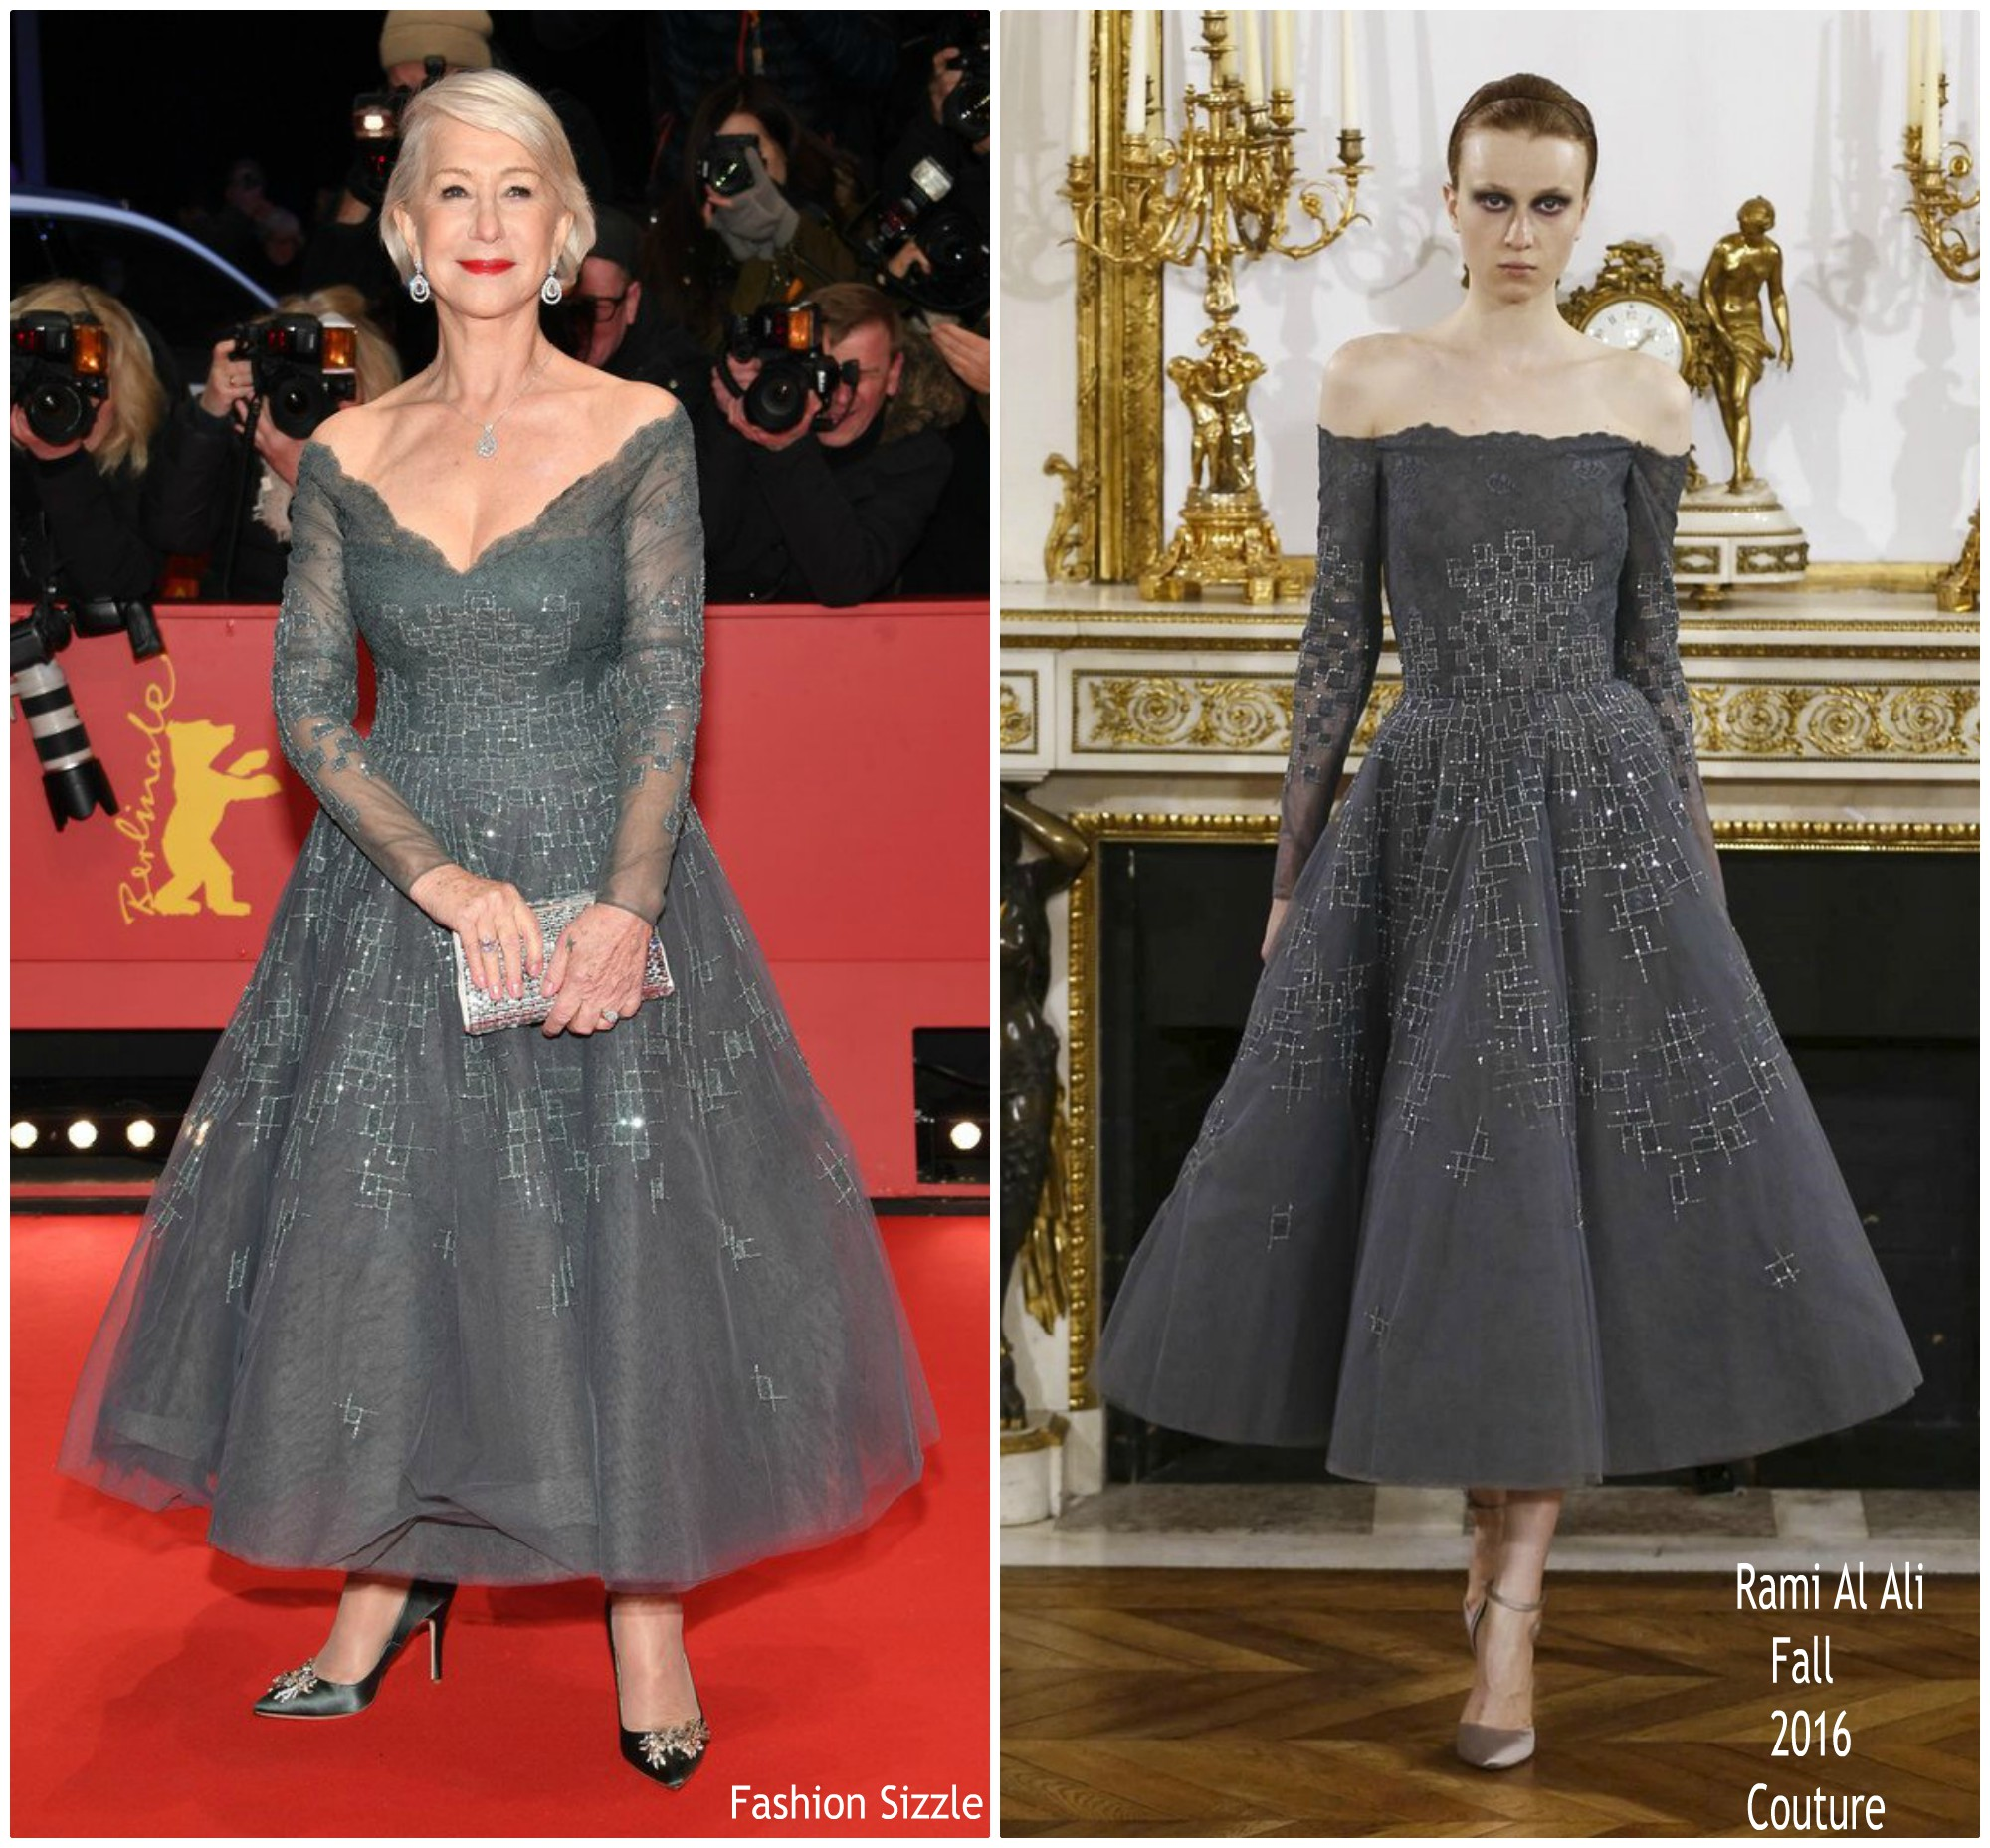 helen-mirren-in-rami-al-ali-couture-isle-of-dogs-berlinale-international-film-festival-opening-ceremony